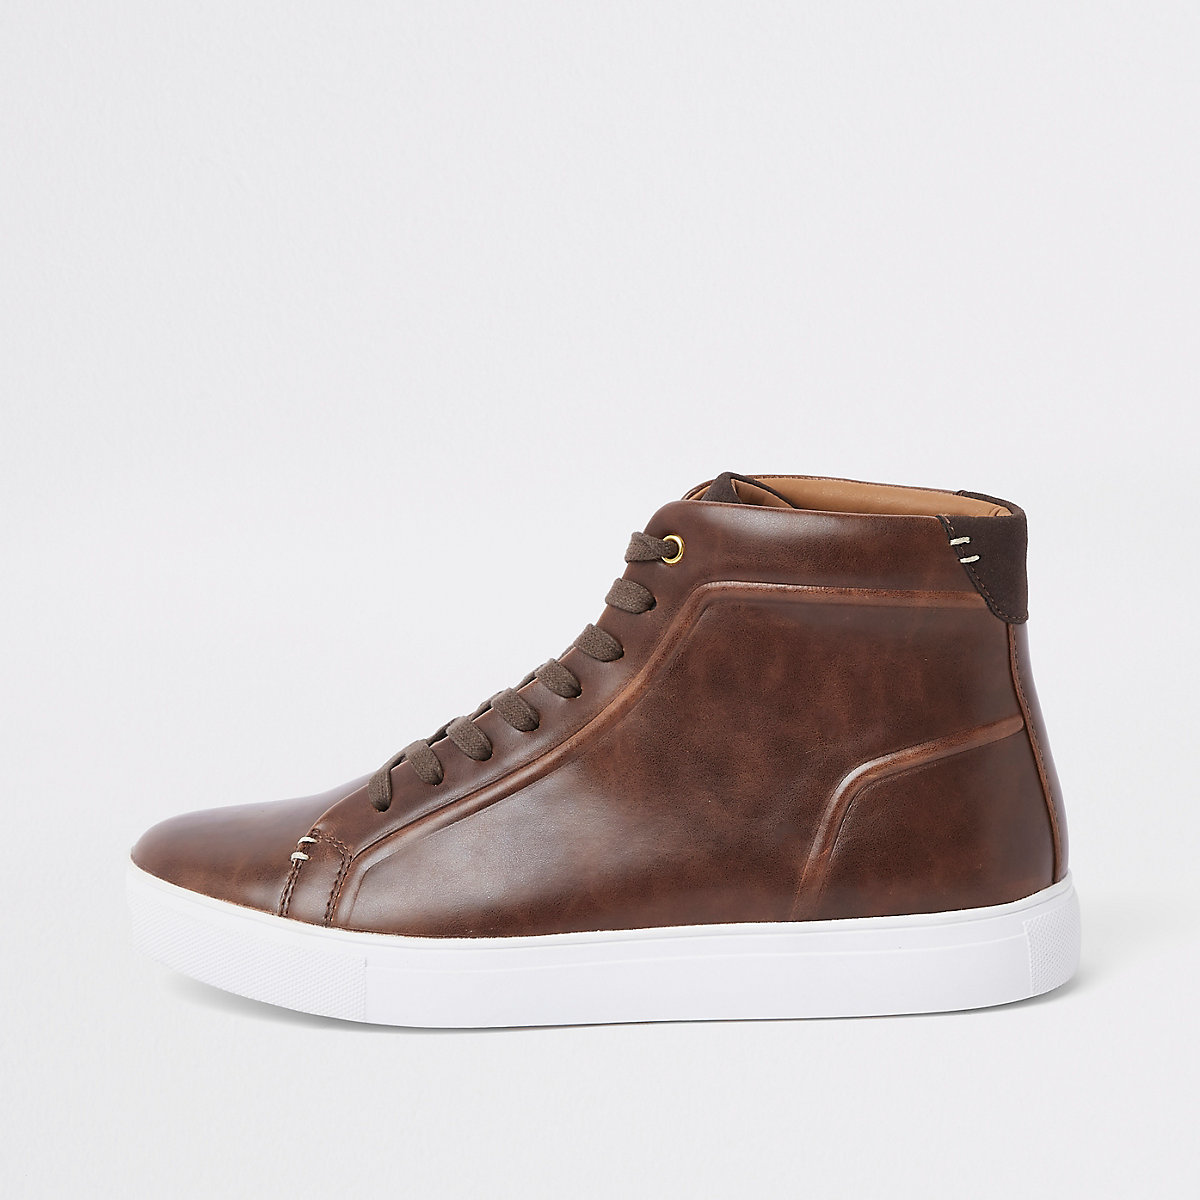 db2a0a095c31 Brown lace-up high top trainers - Trainers - Shoes   Boots - men